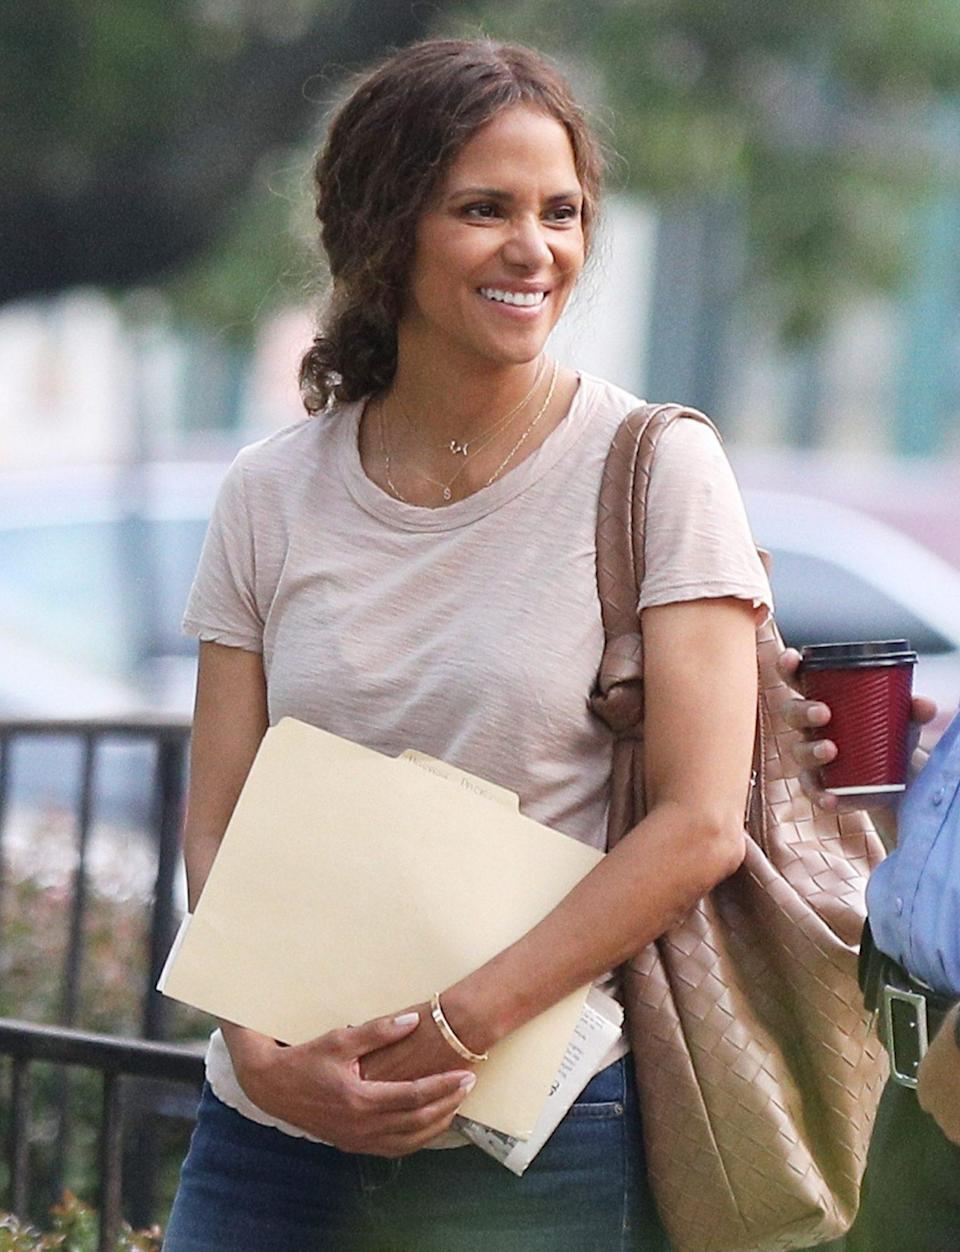 <p>Halle Berry is seen on the set of <em>The Mothership</em> before filming with fellow actor John Ortiz on July 20 in Norwood, Massachusetts.</p>